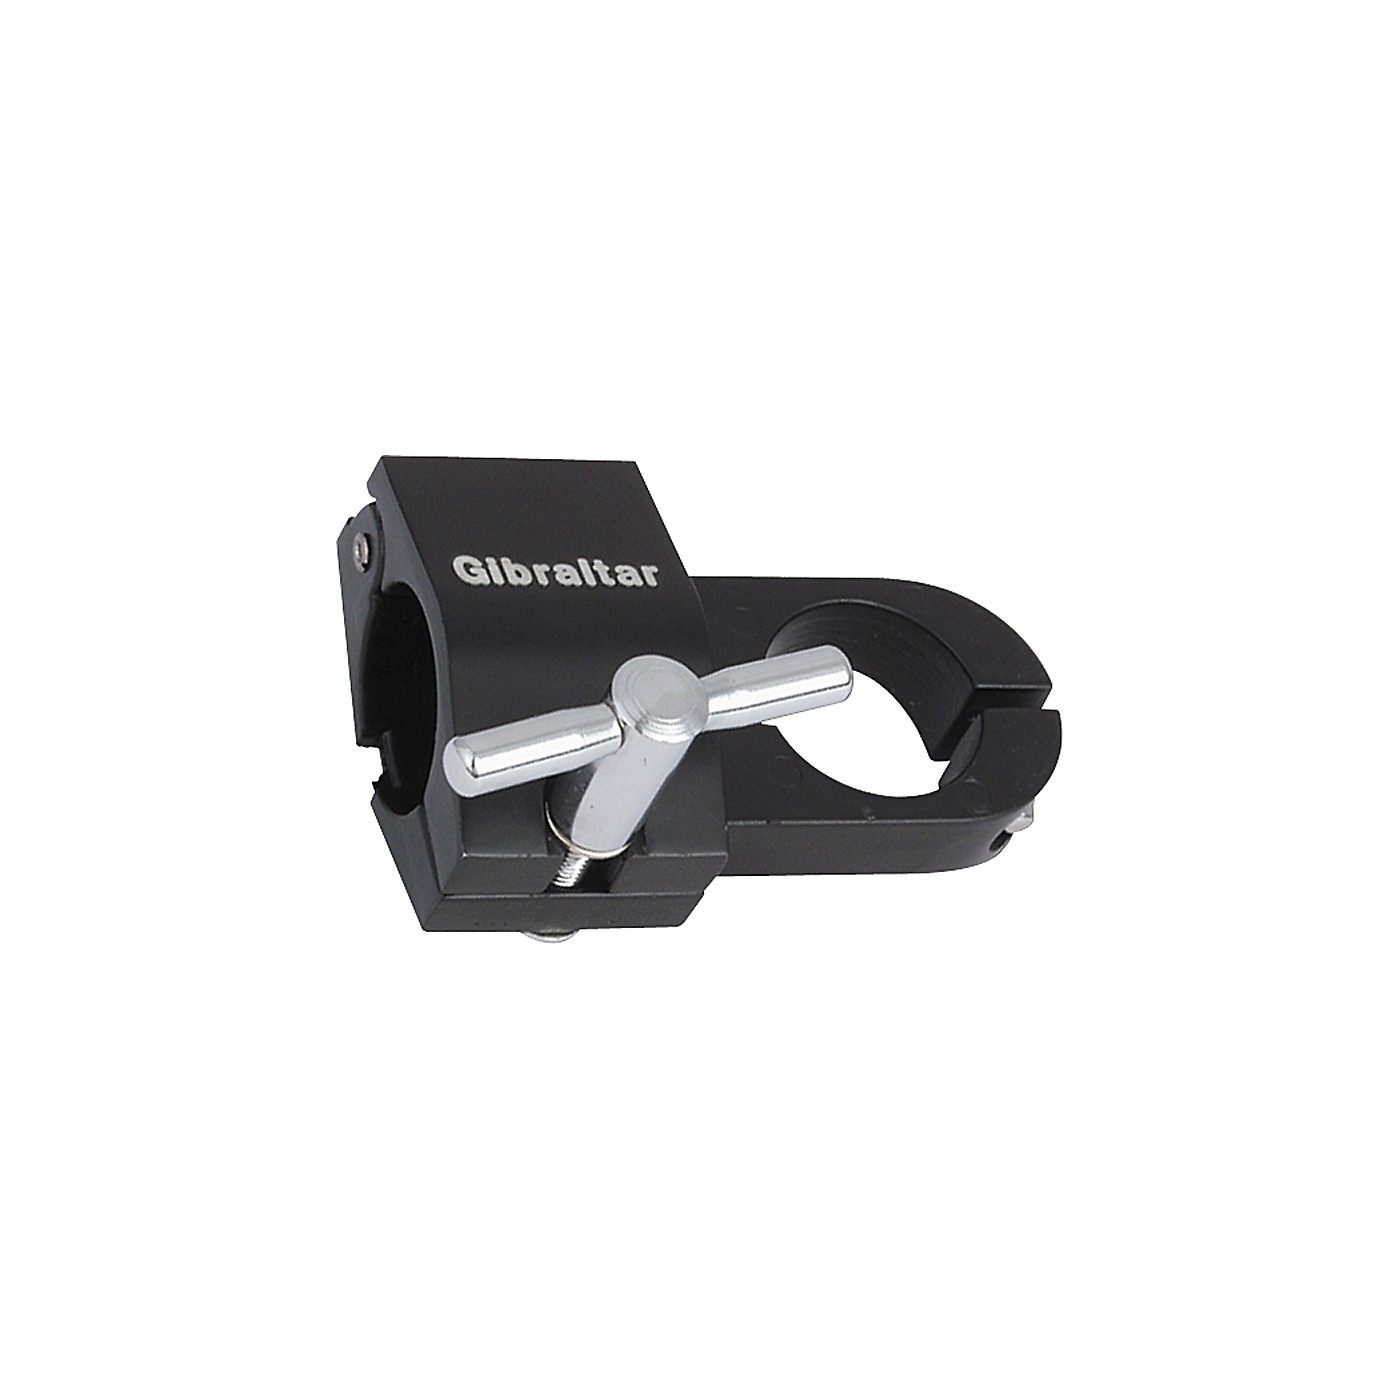 Gibraltar Stackable Right Angle Clamp thumbnail